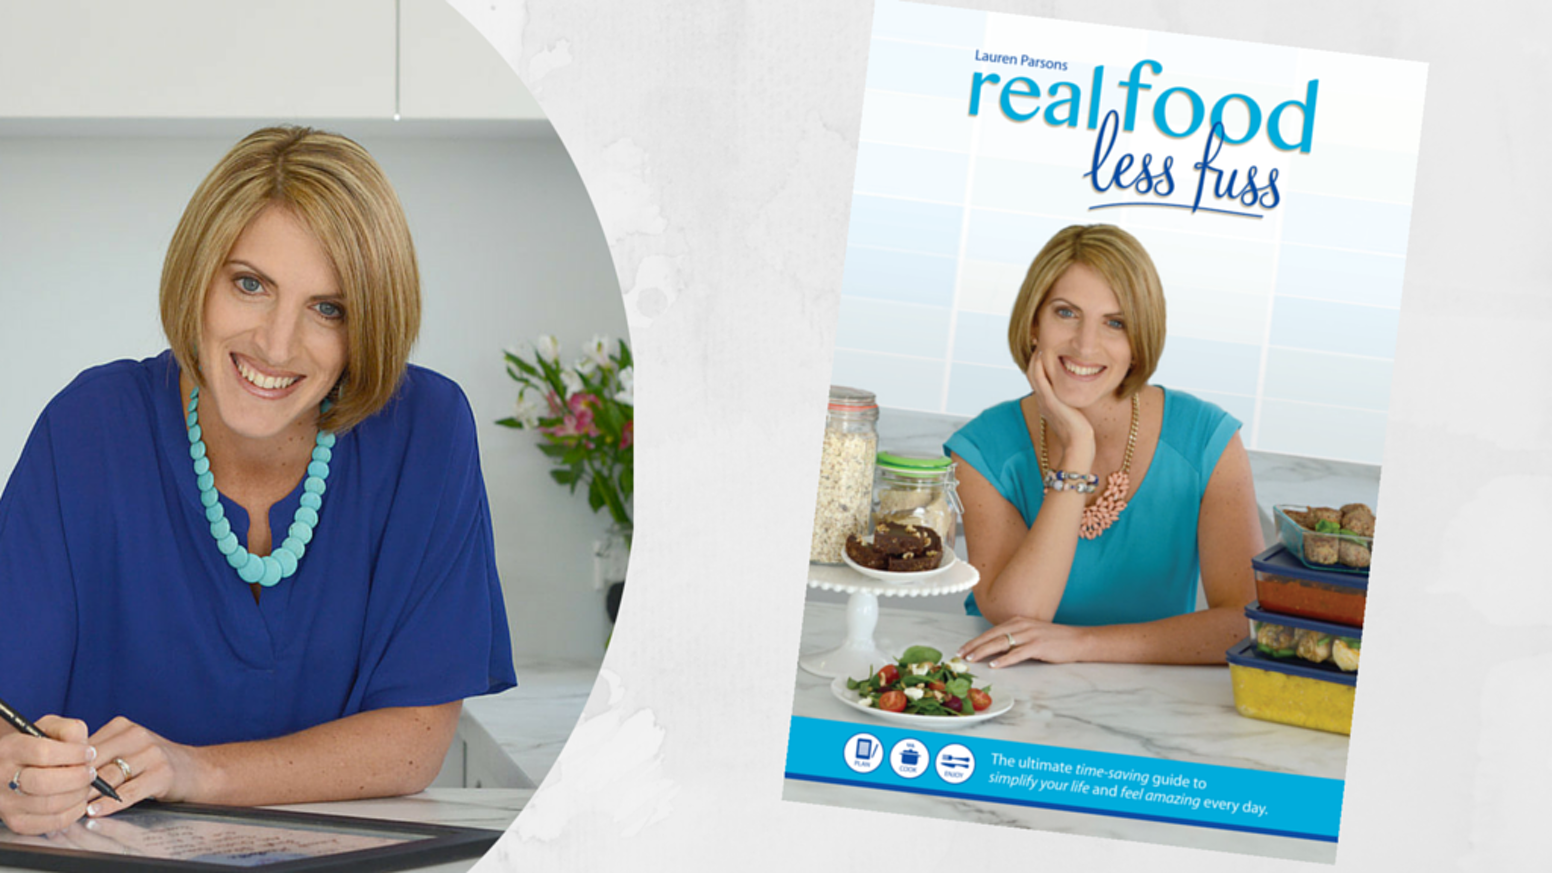 Much more than just a cook book. The ultimate time saving guide to simplify your life, eat mindfully and feel amazing every day!  Follow the link below for details.